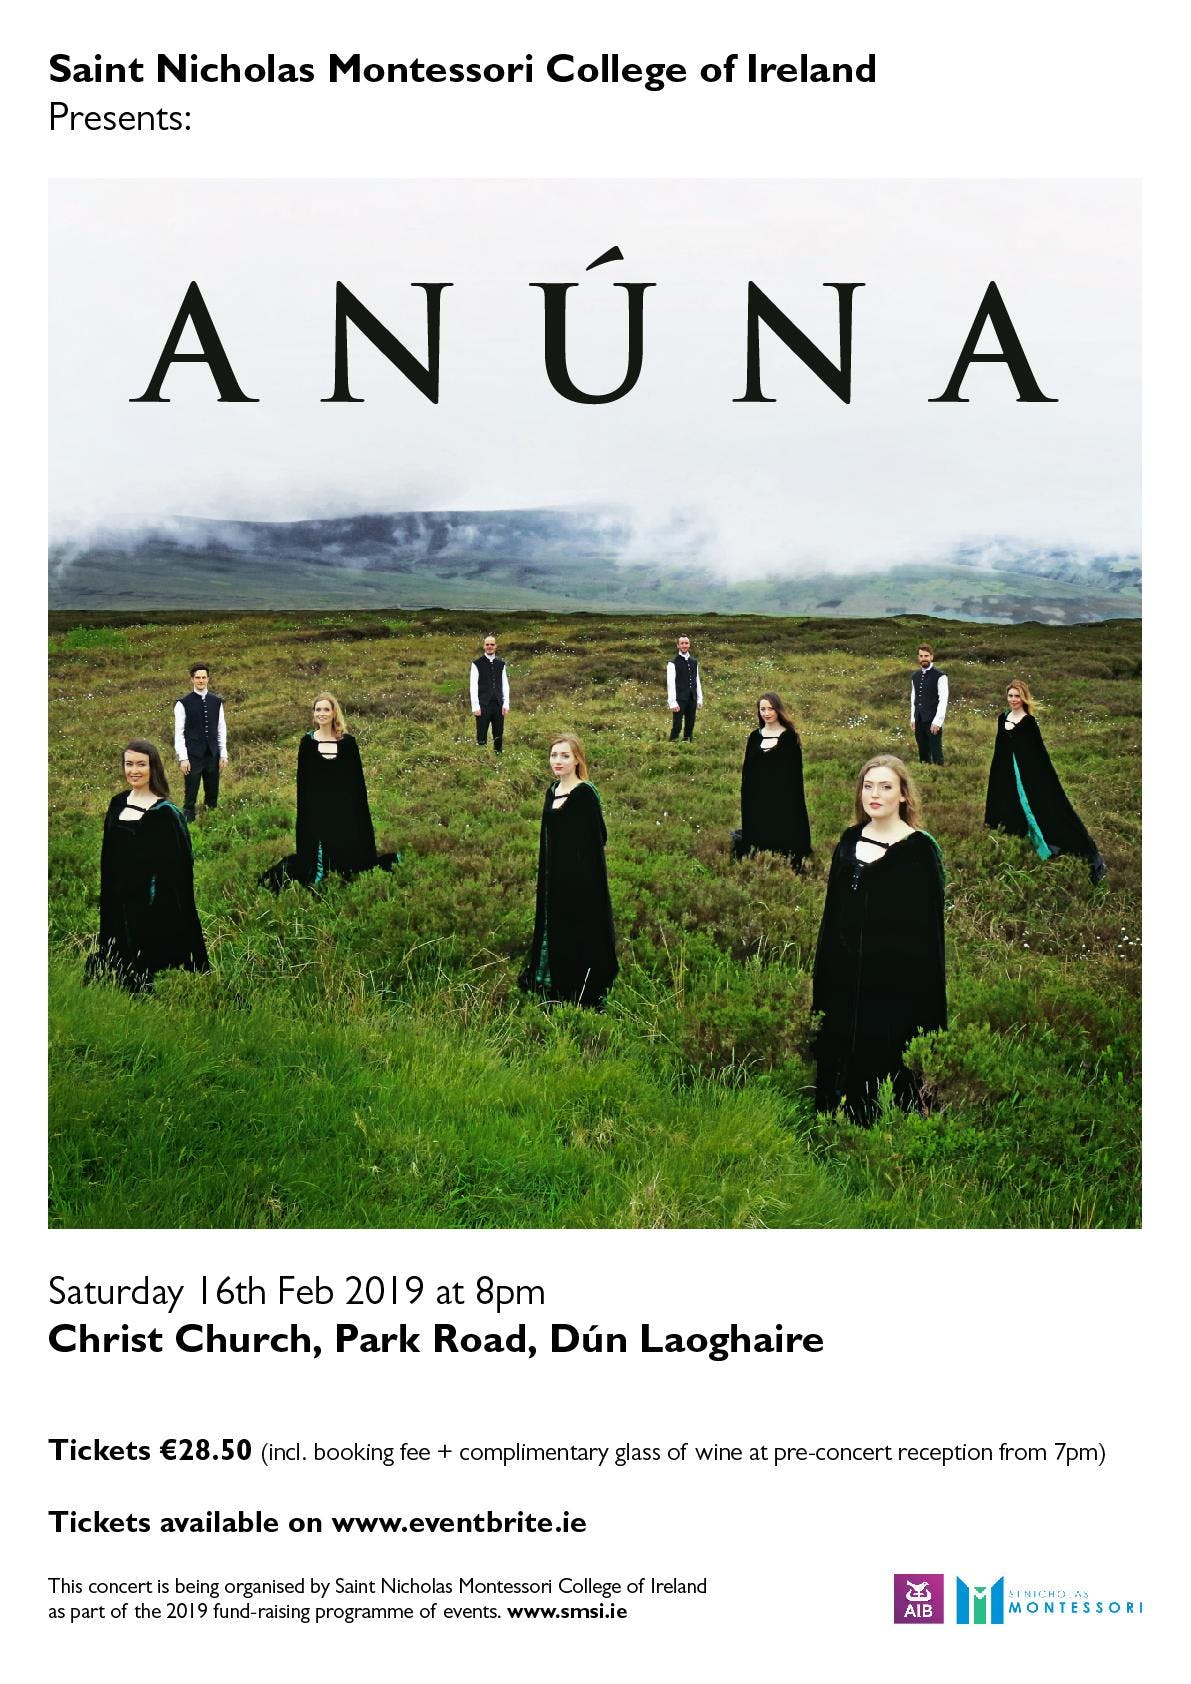 ANÚNA in Concert - presented by St. Nicholas Montessori College of Ireland